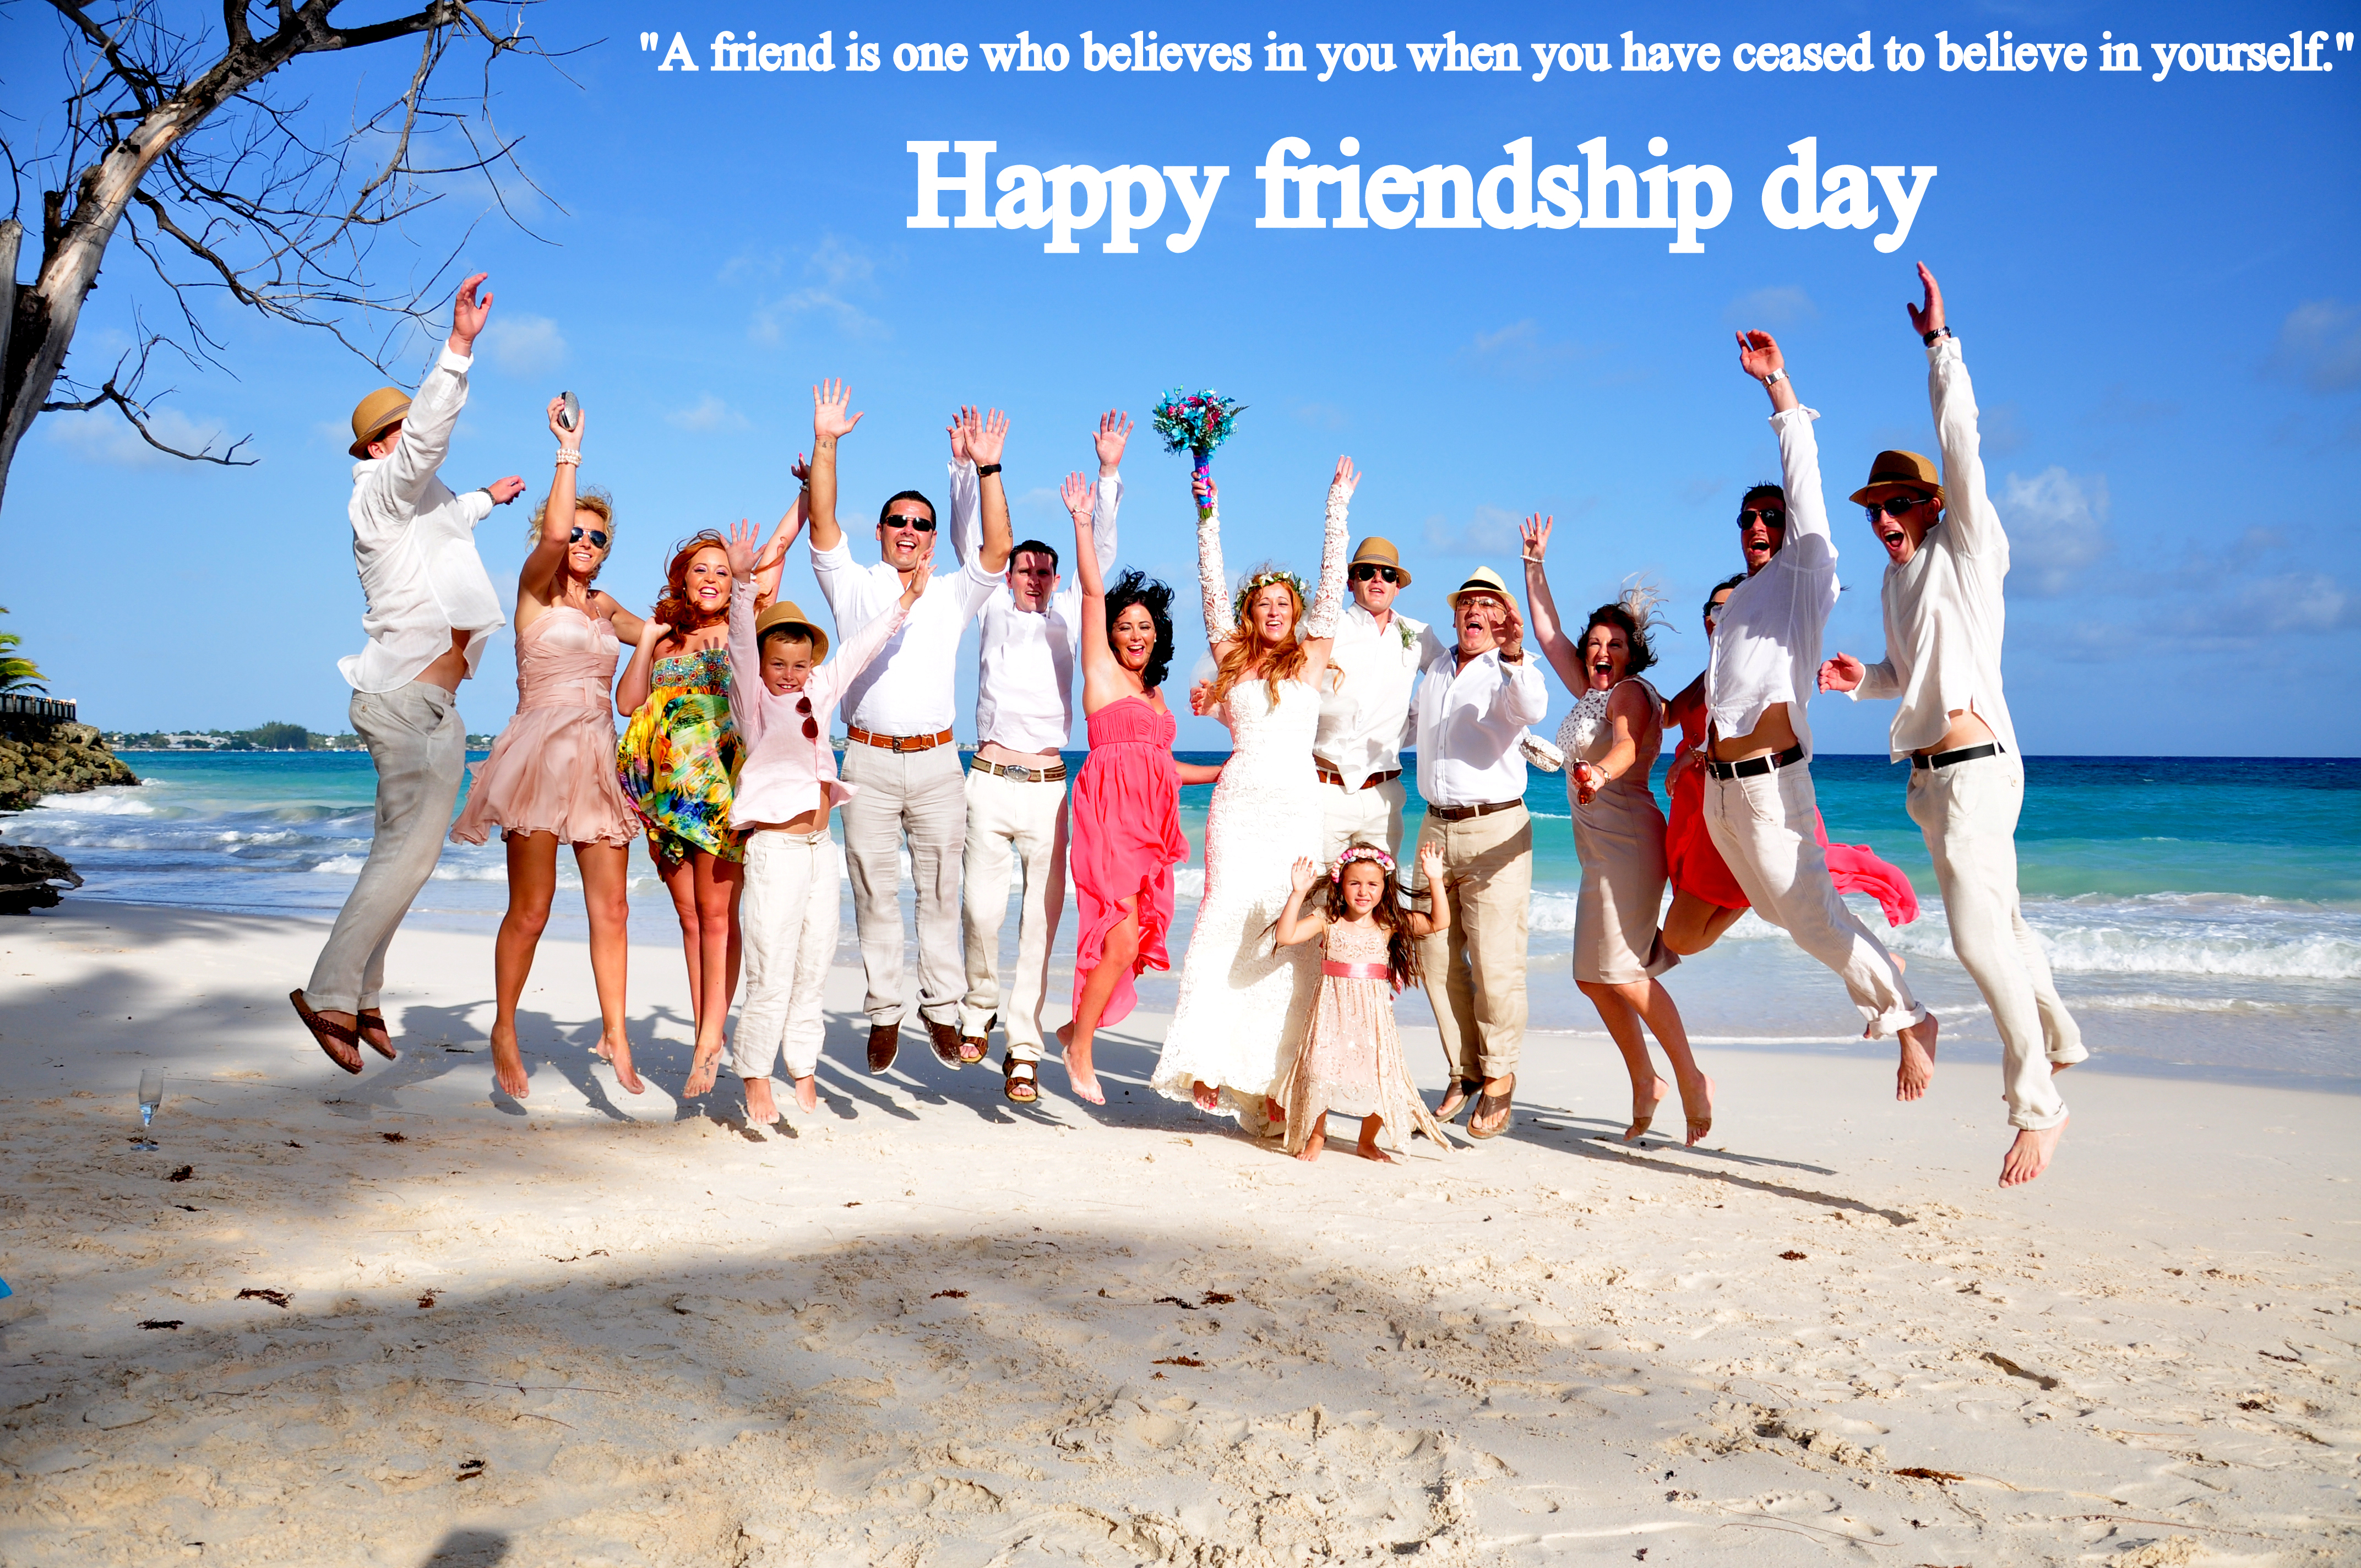 Friendship day wallpaper facebook